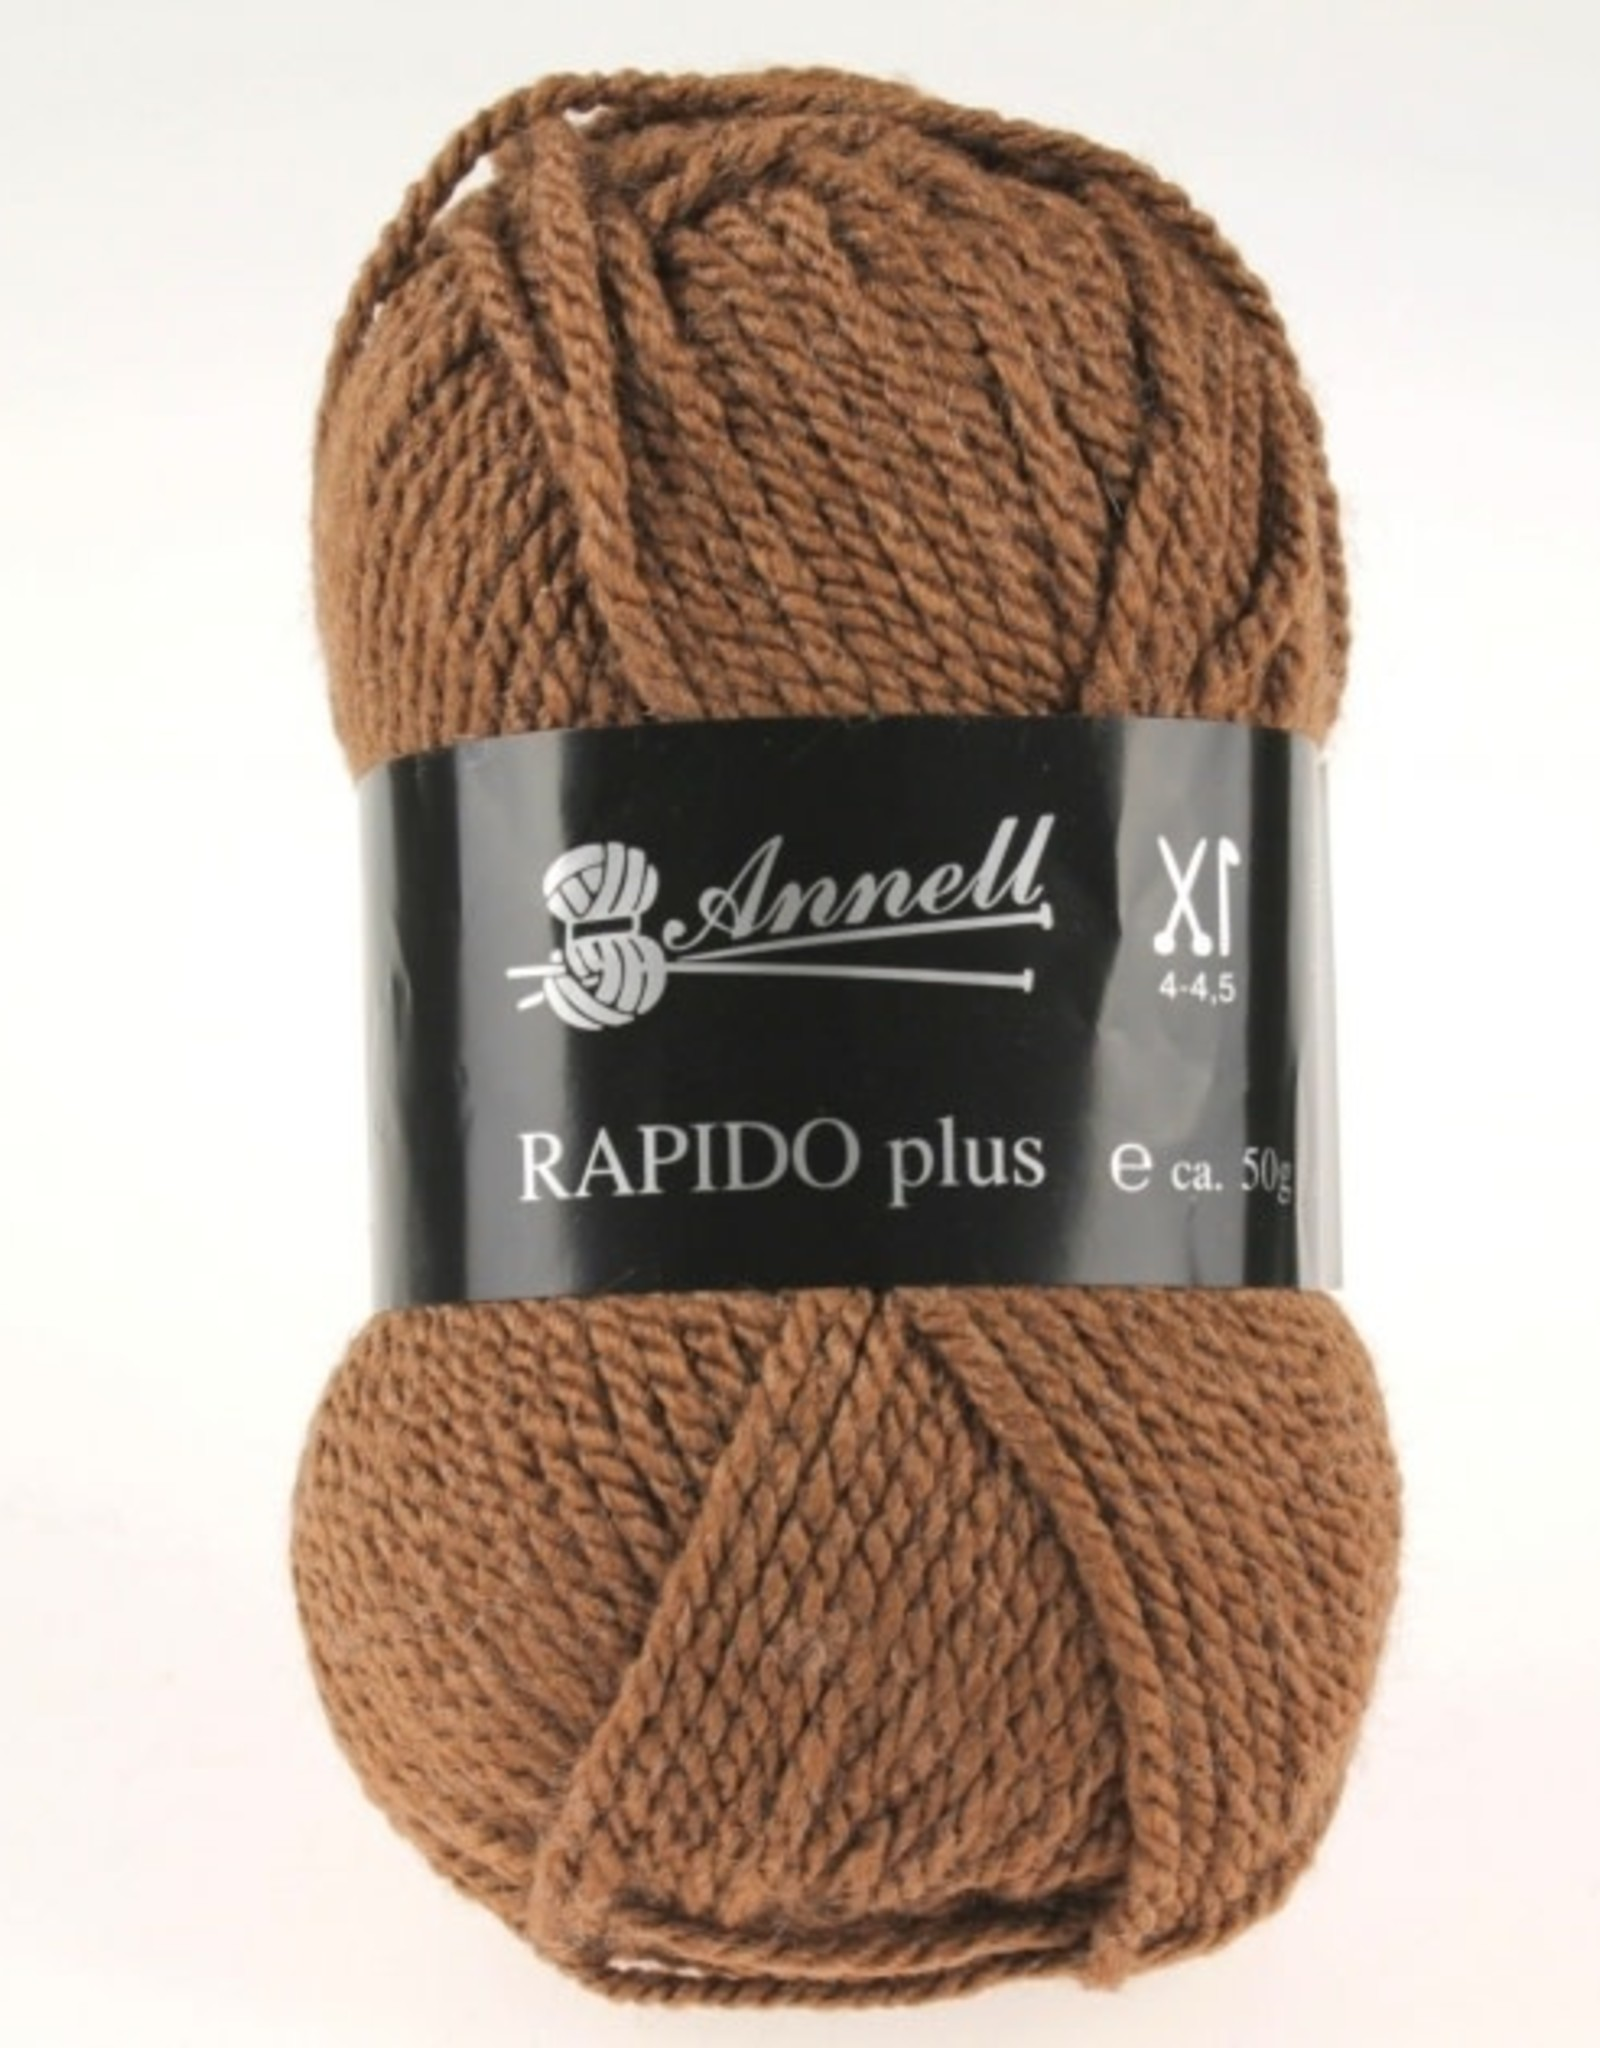 Annell Annell rapido plus 9211